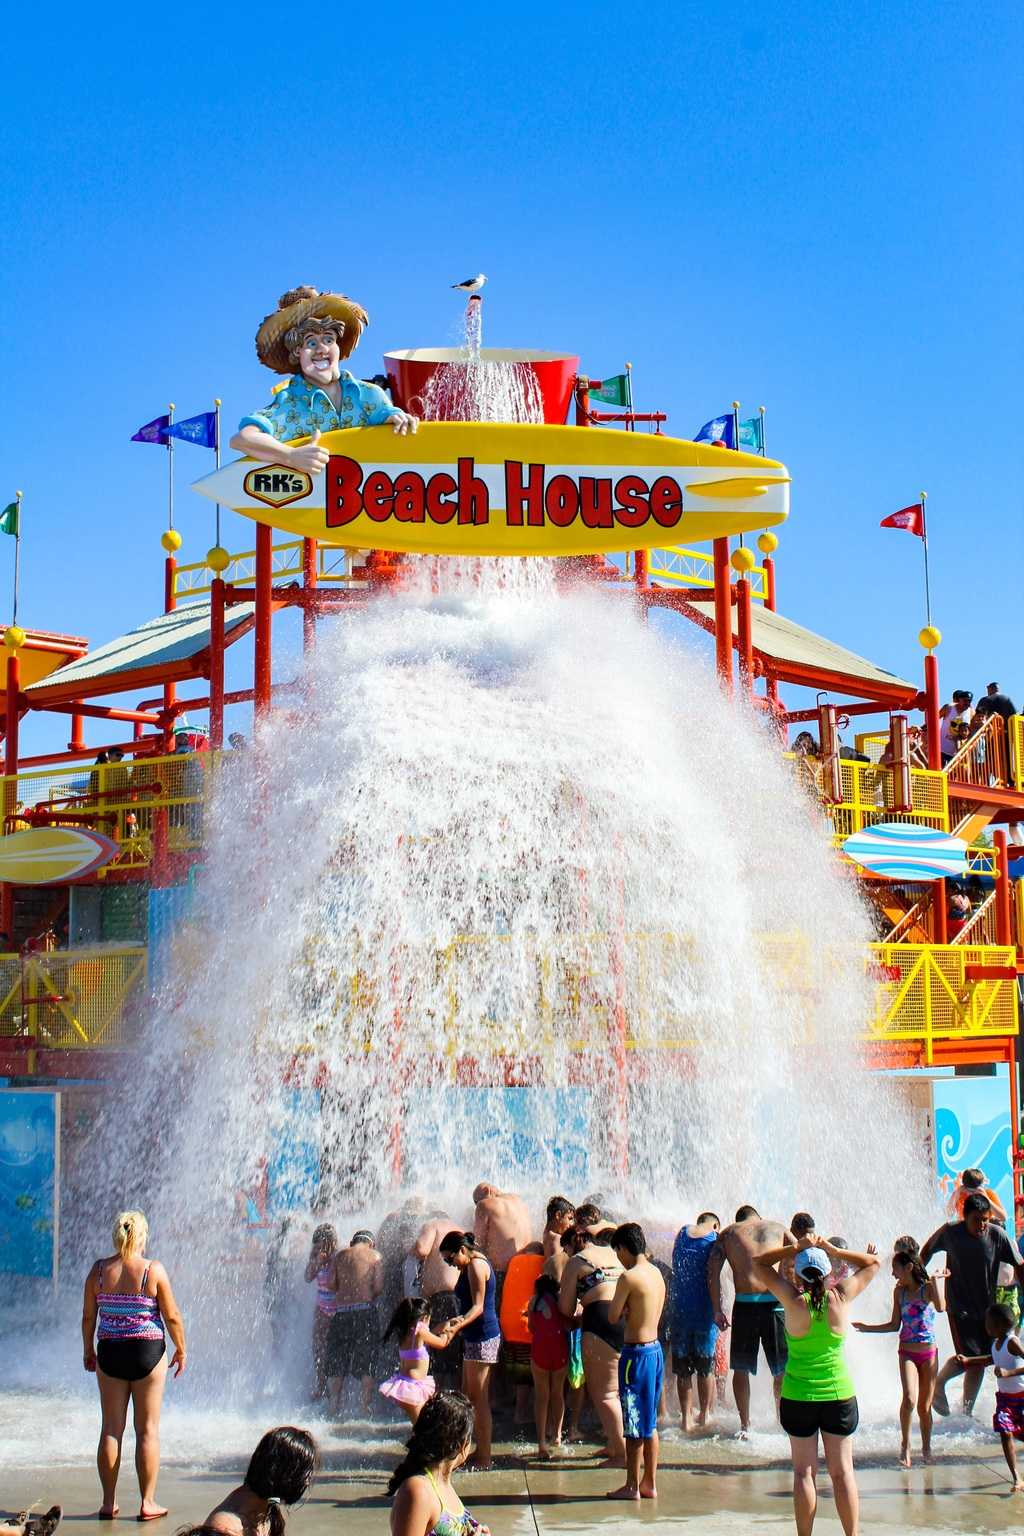 Visit the newly updated Knott's Soak City in Buena Park, California! The entire waterpark been beautifully remodeled to include 7 new waterslides, an expanded food area and much more needed shade. It is the perfect place to spend the summer relaxing outdoors with your family! You can get discount tickets to Knott's Soak City right here!